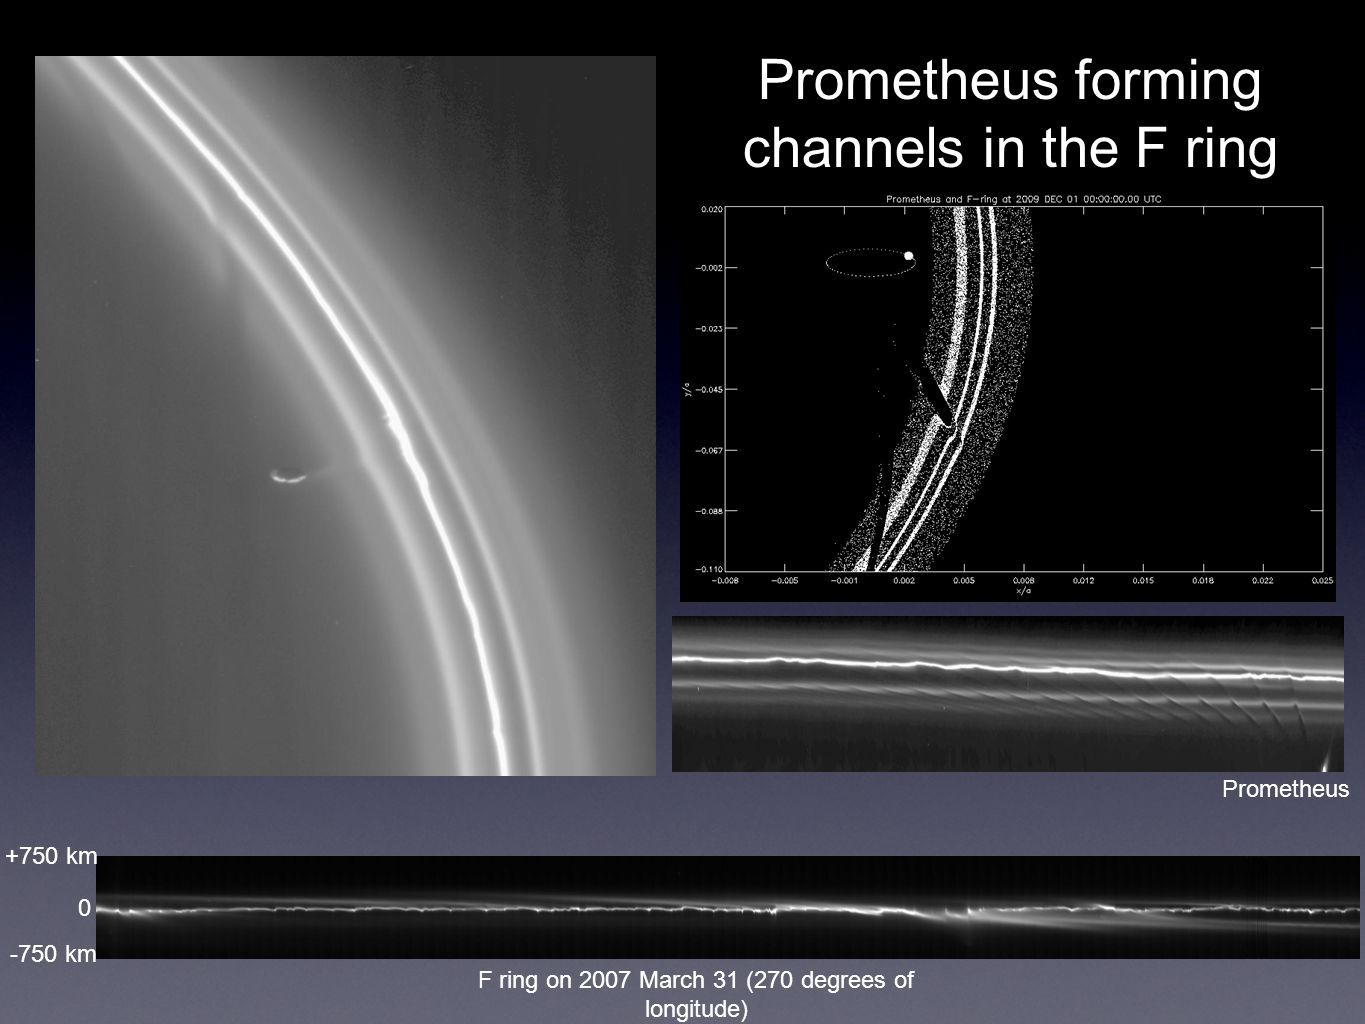 Prometheus forming channels in the F ring F ring on 2007 March 31 (270 degrees of longitude) +750 km -750 km 0 Prometheus